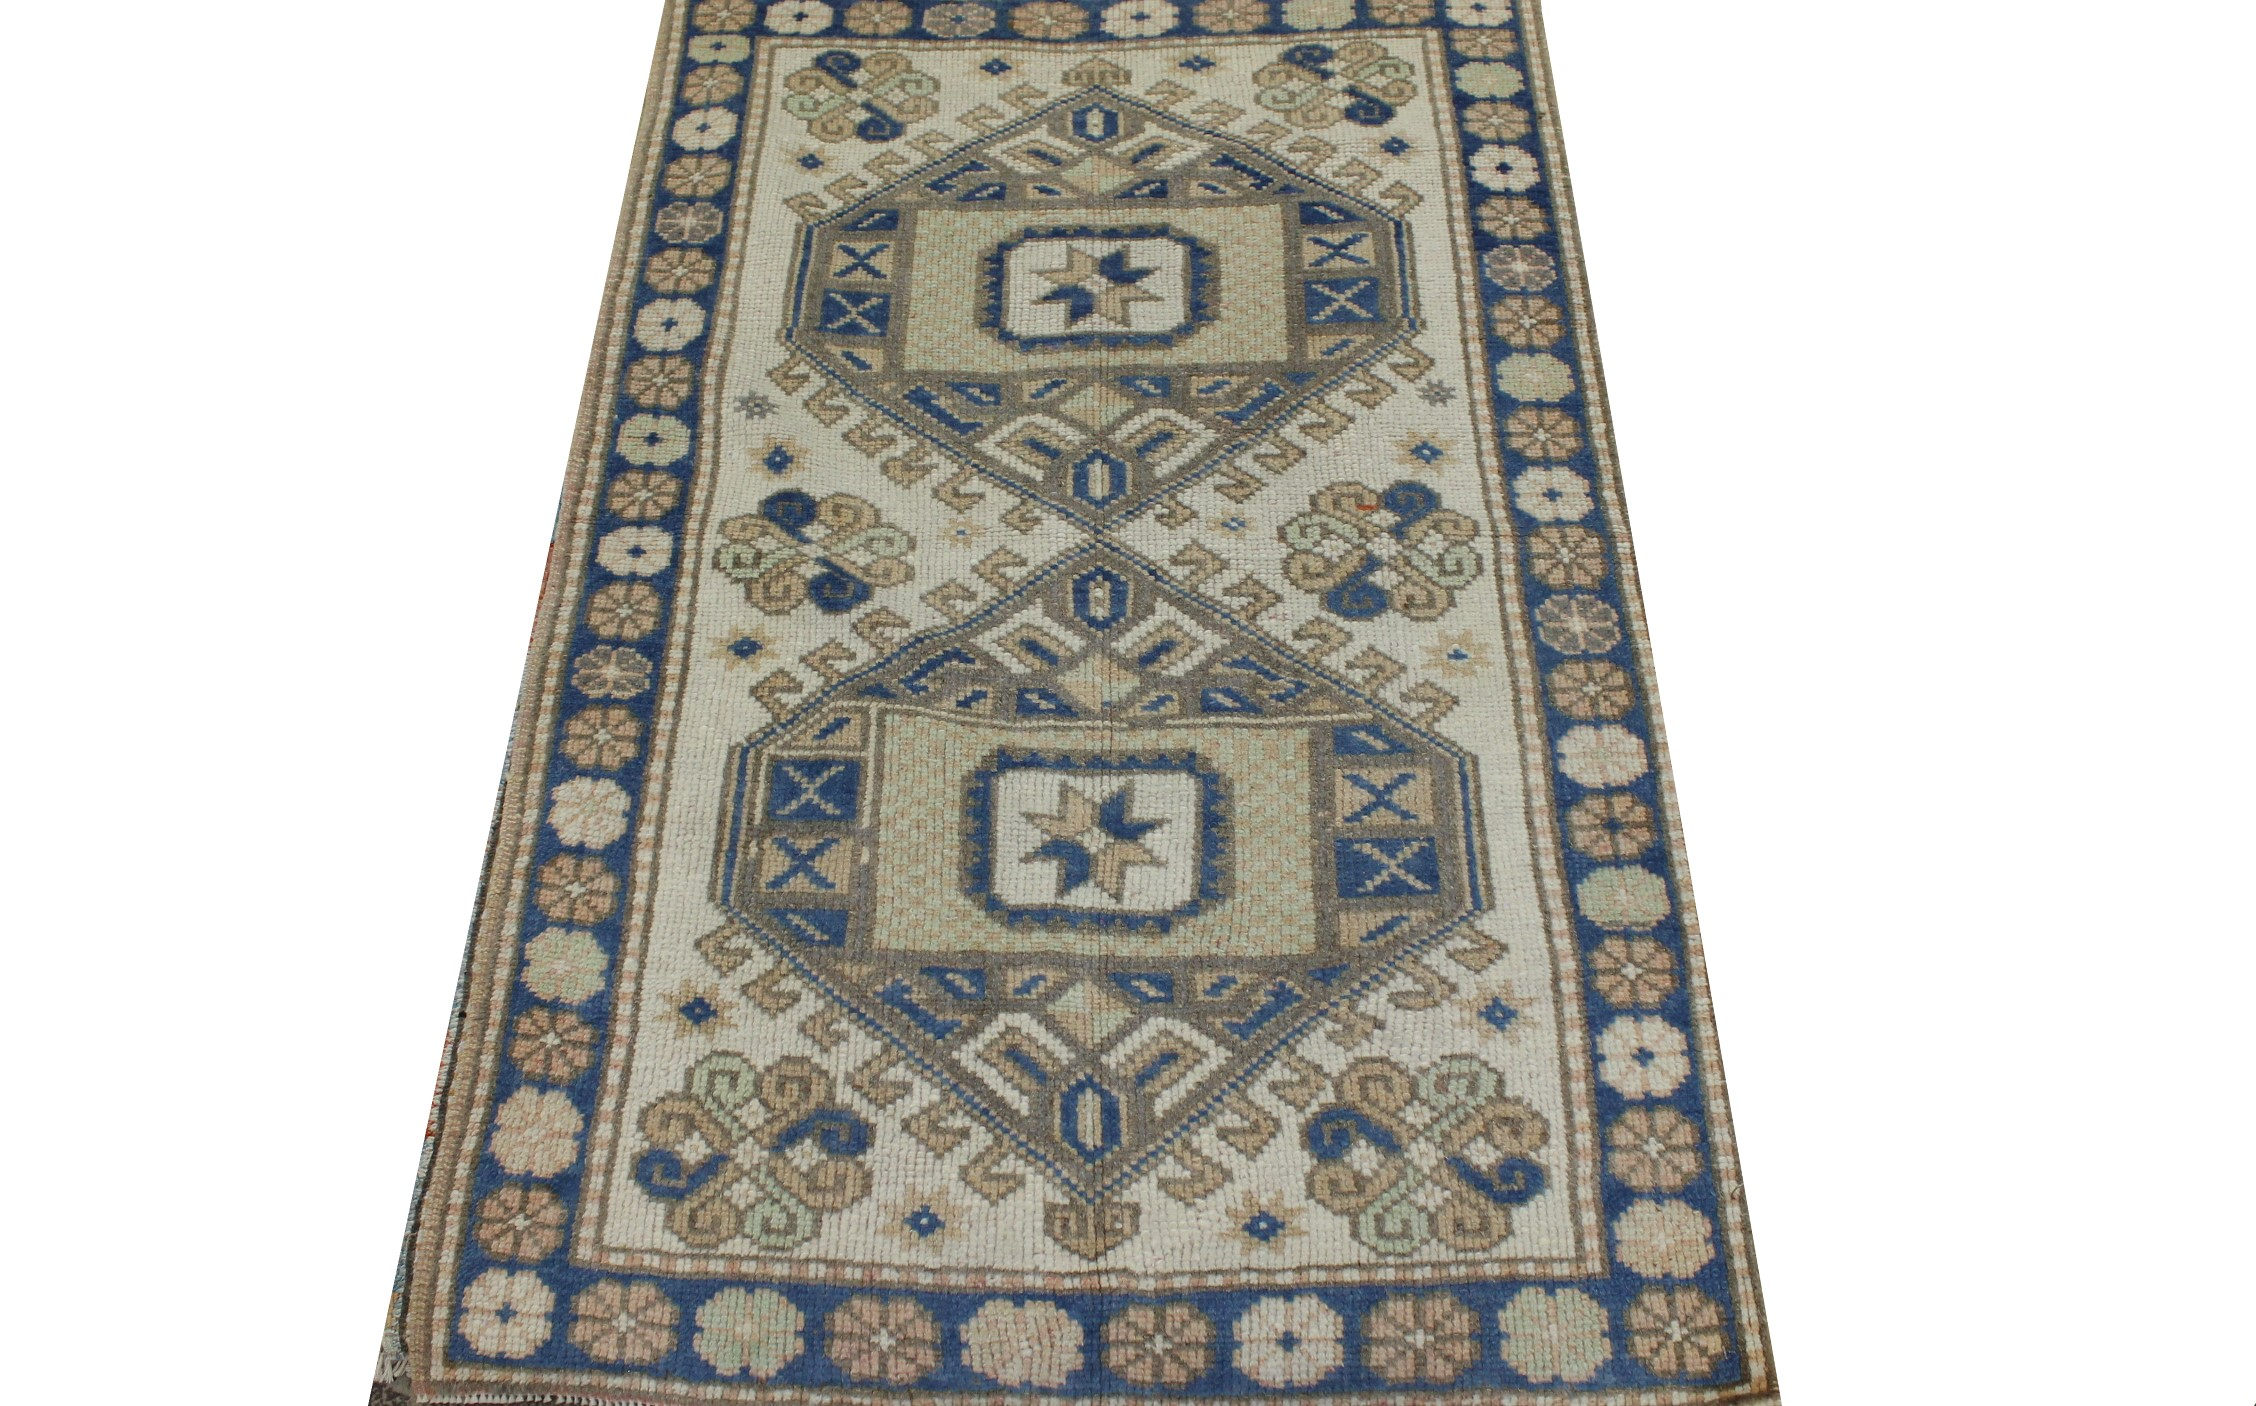 3x5 Oushak Hand Knotted Wool Area Rug - MR023467